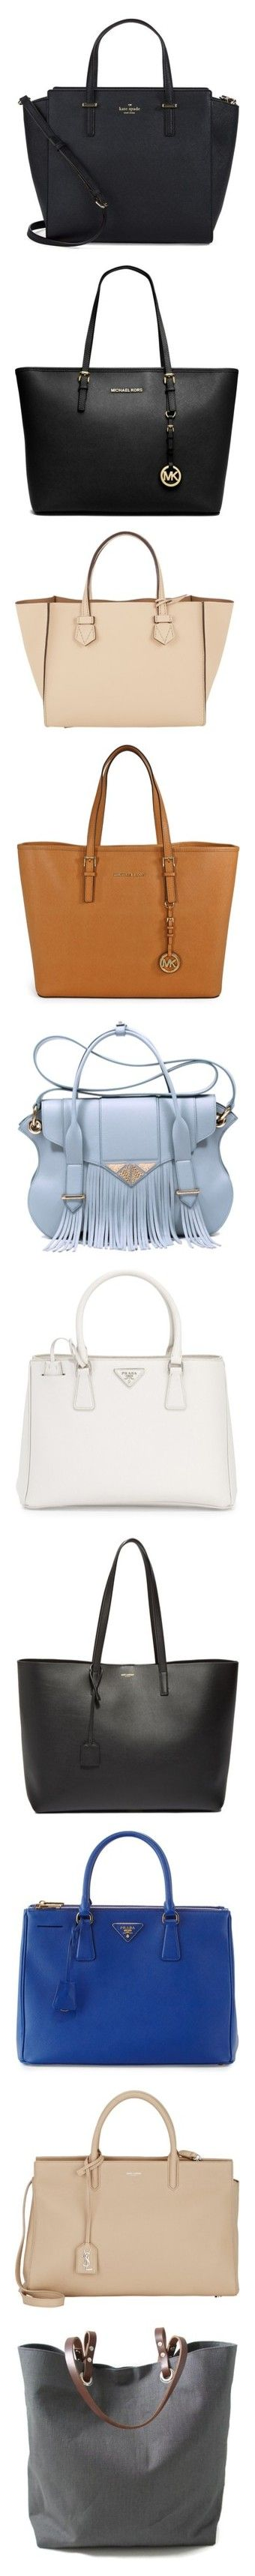 """""""PolyData: Top 10 Anti-Diaper Tote Bags"""" by polyvore ❤ liked on Polyvore featuring polydata, bags, handbags, tote bags, purses, bolsas, black, leather tote, kate spade tote bags and purse tote"""